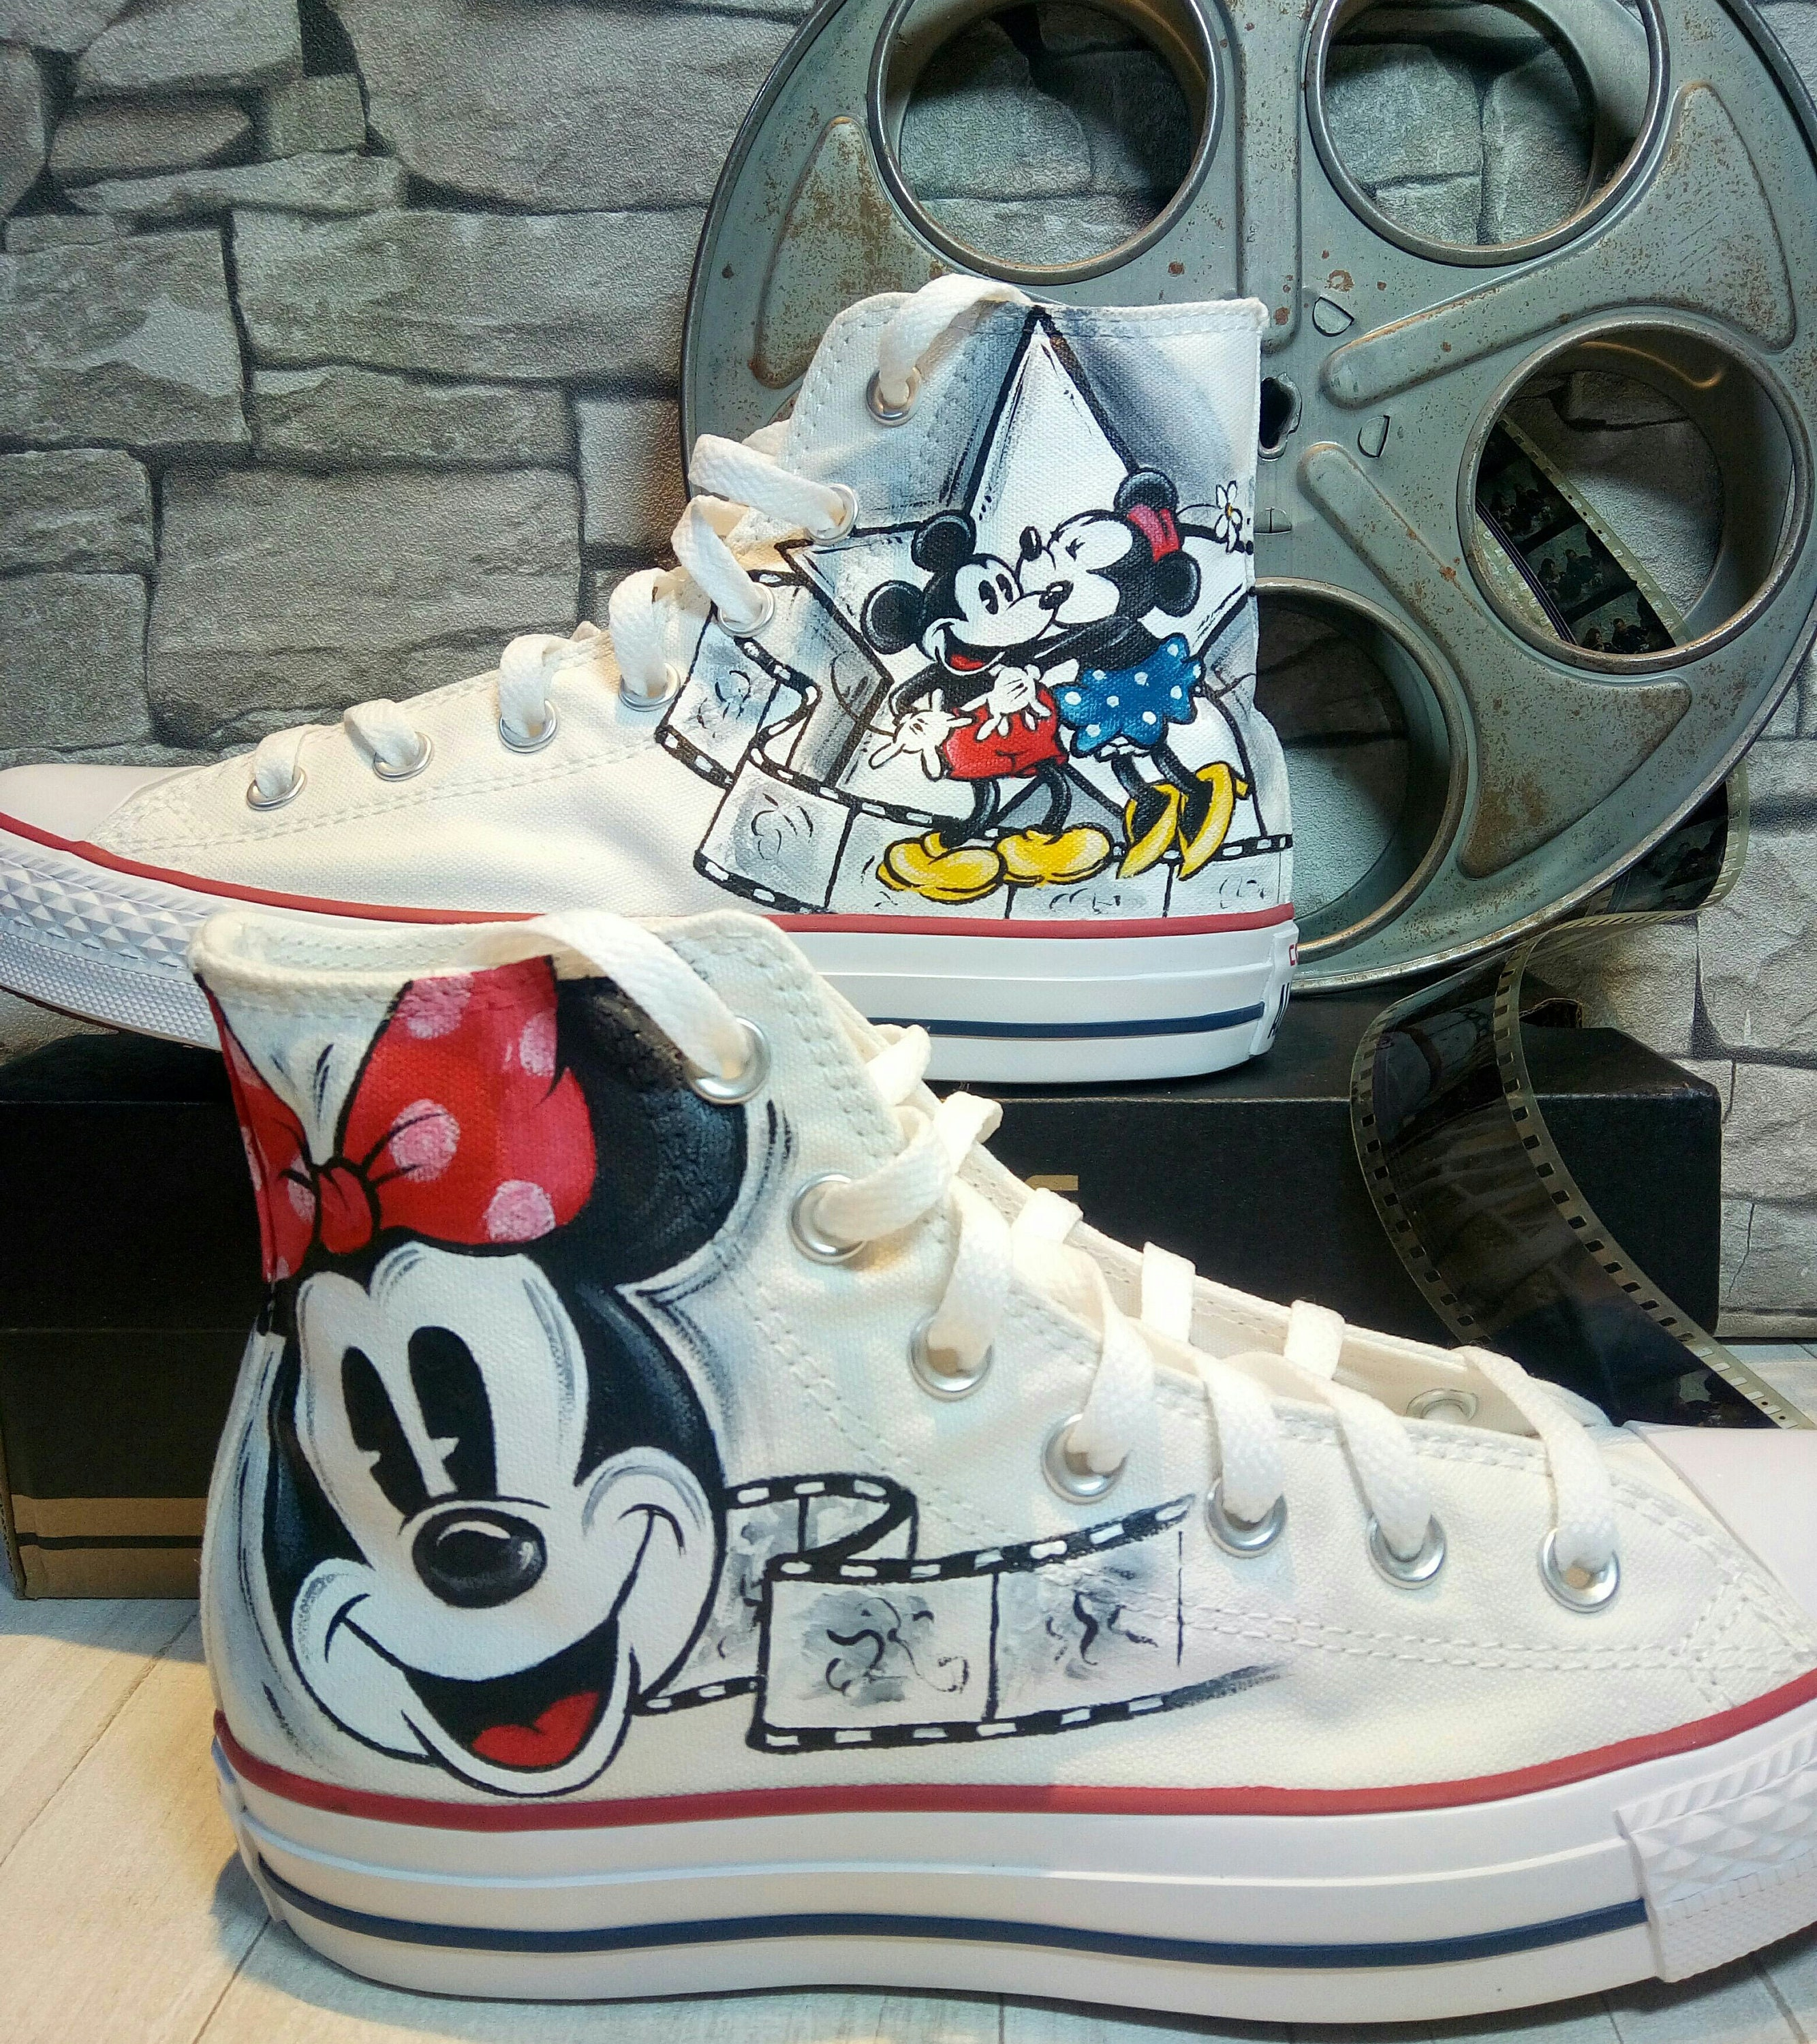 0d0b8ff3e7a9 Disney hand painted shoes converse hand painted shoes